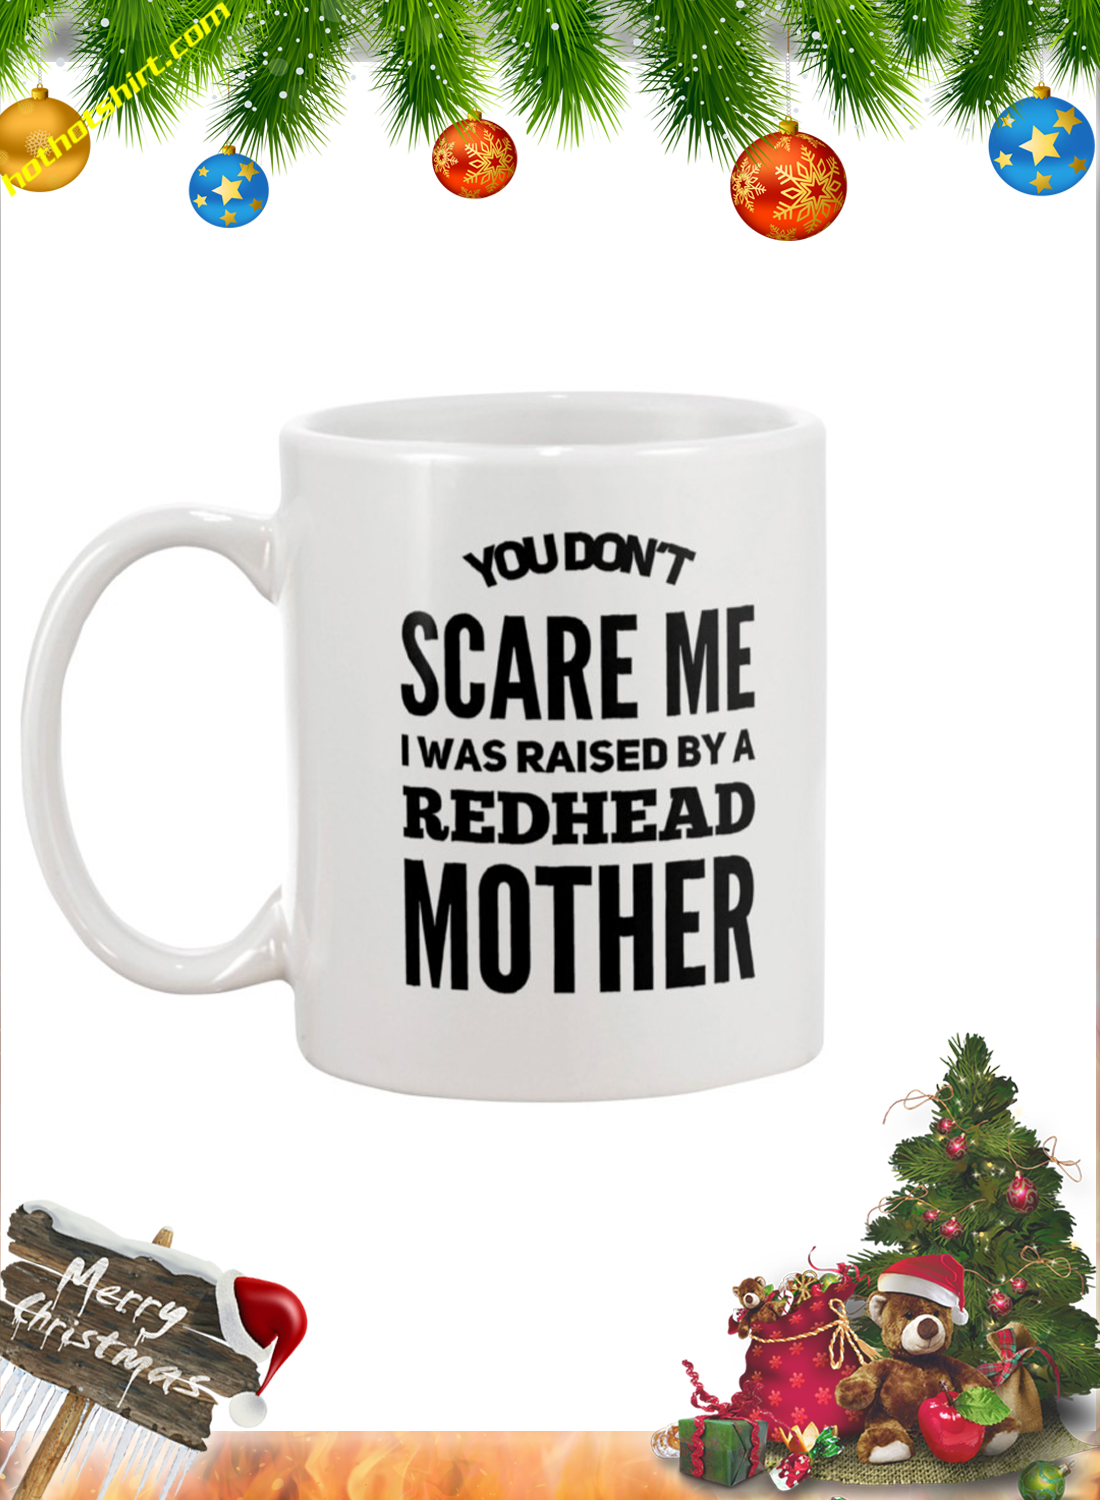 You don't scare me i was raised by a redhead mother mug